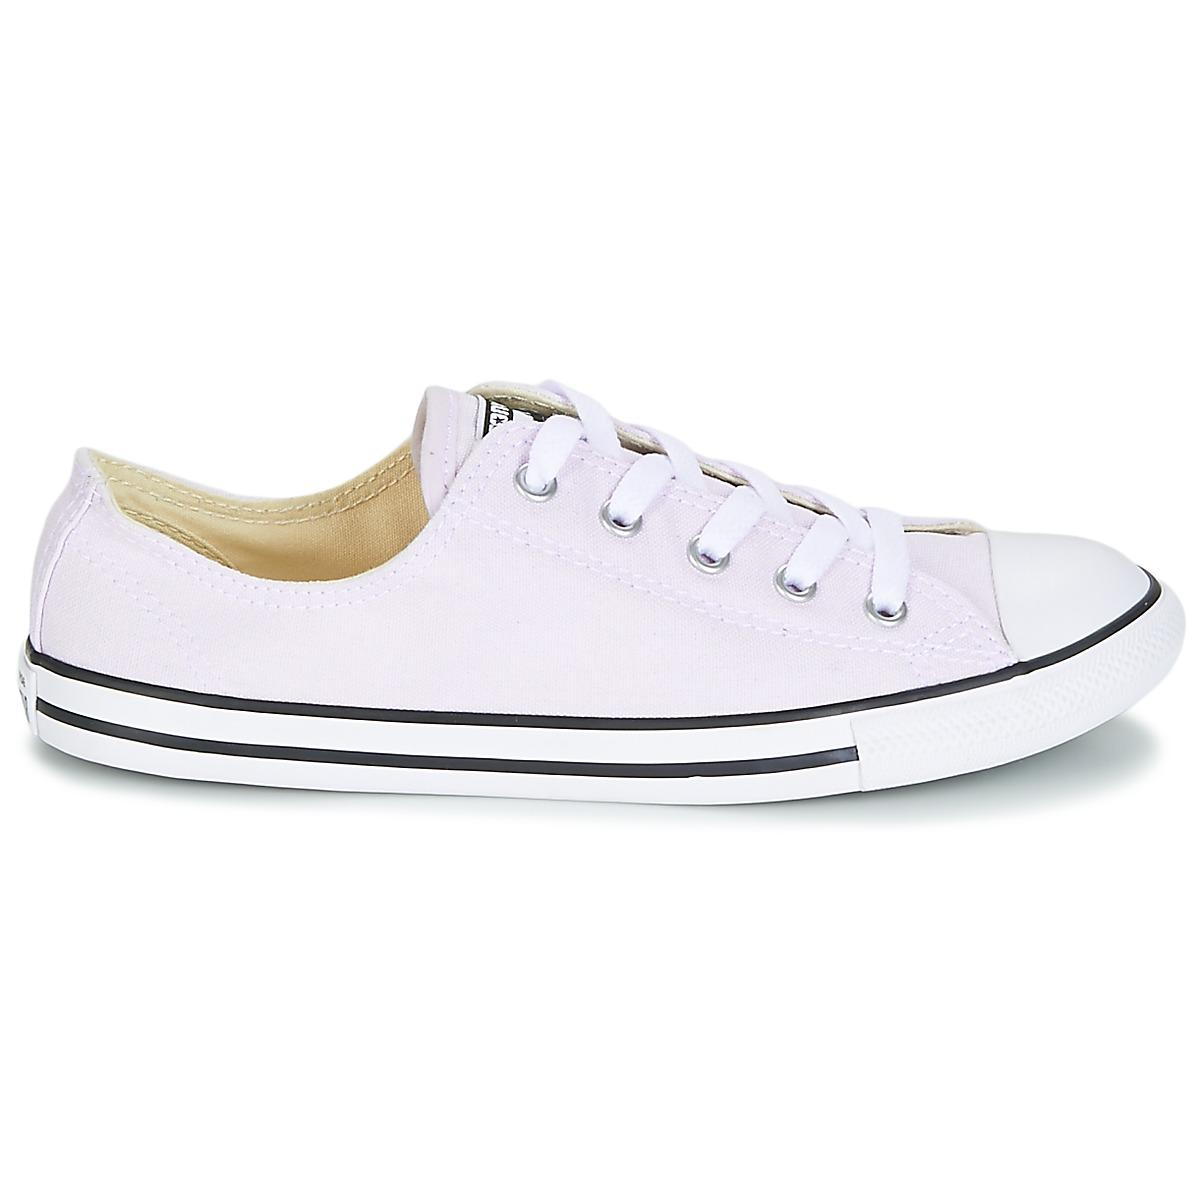 converse all star dainty canvas